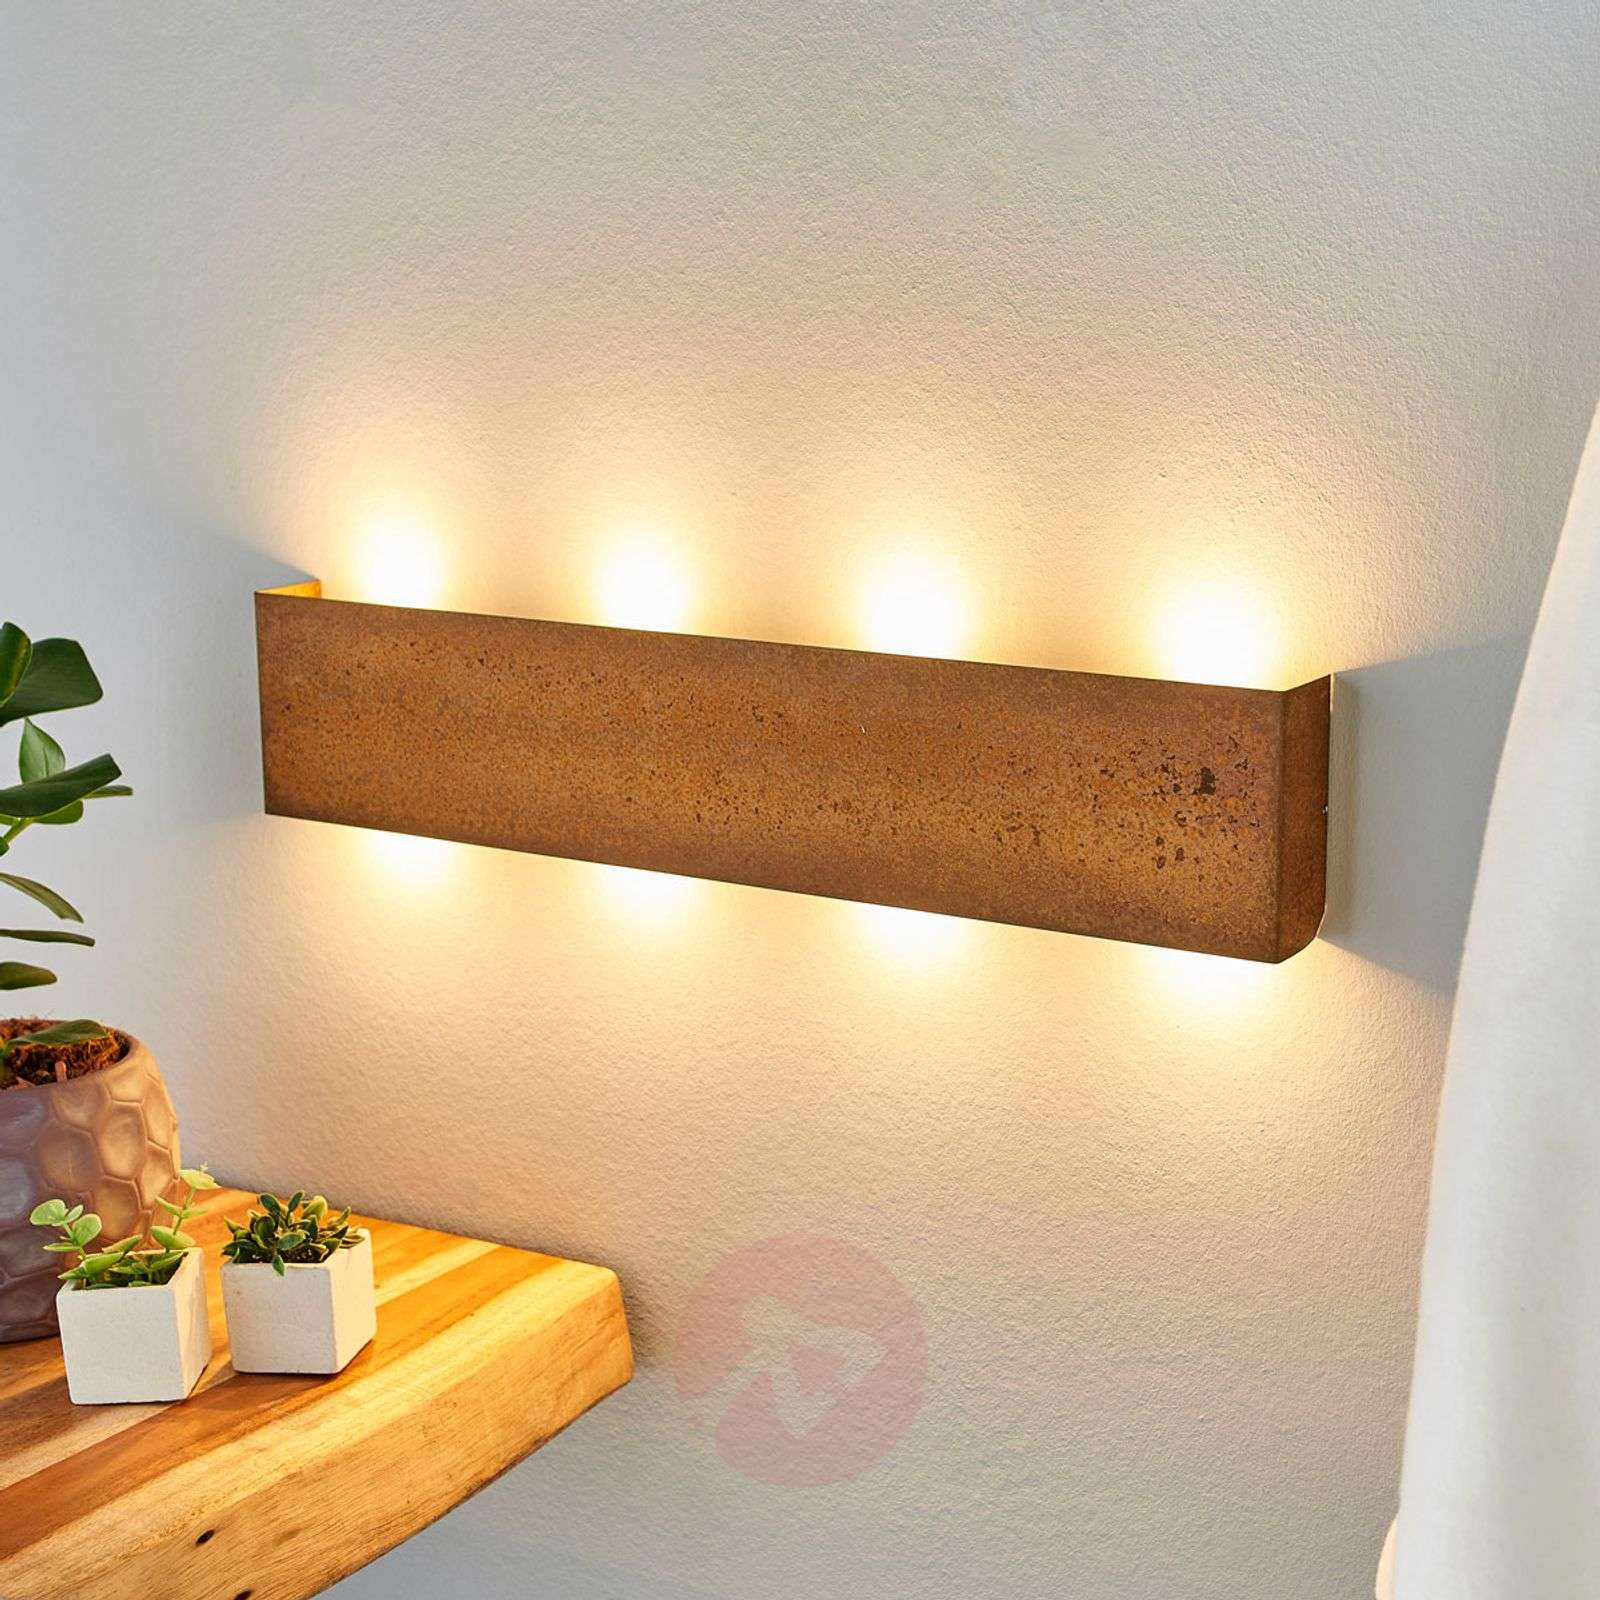 Plafoniera Da Esterno Ruggine : Acquista applique a led maja dimmerabile effetto ruggine lampade.it